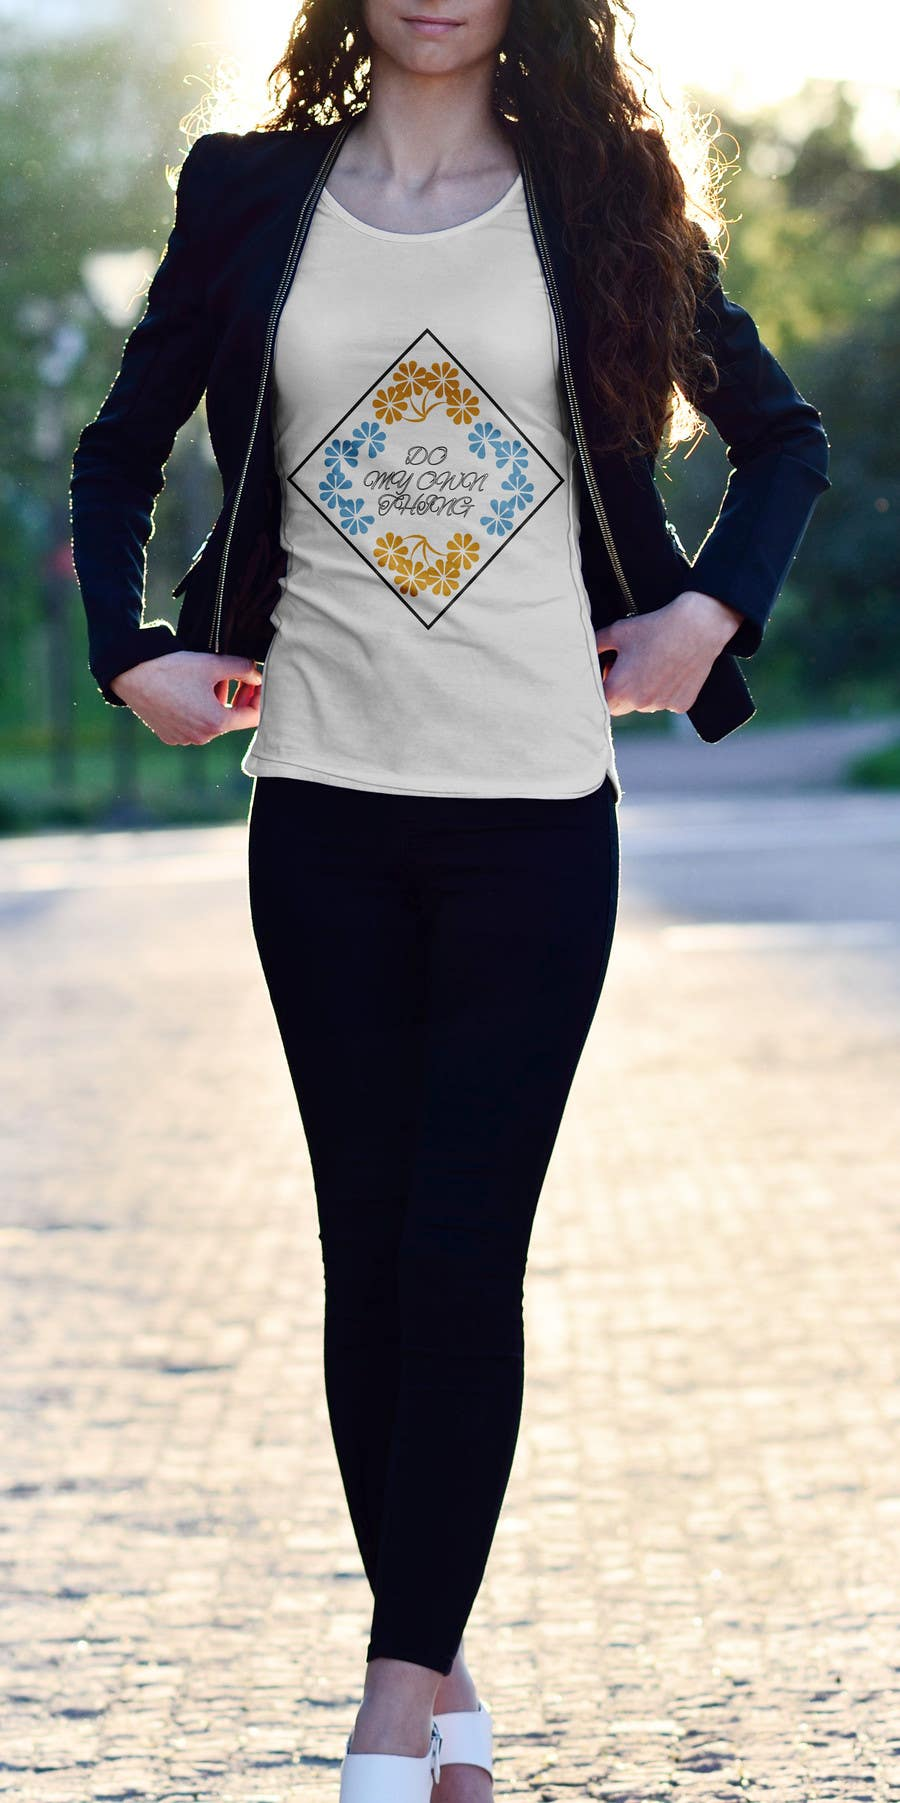 Proposition n°57 du concours T-Shirt Designs Required - Be Creative